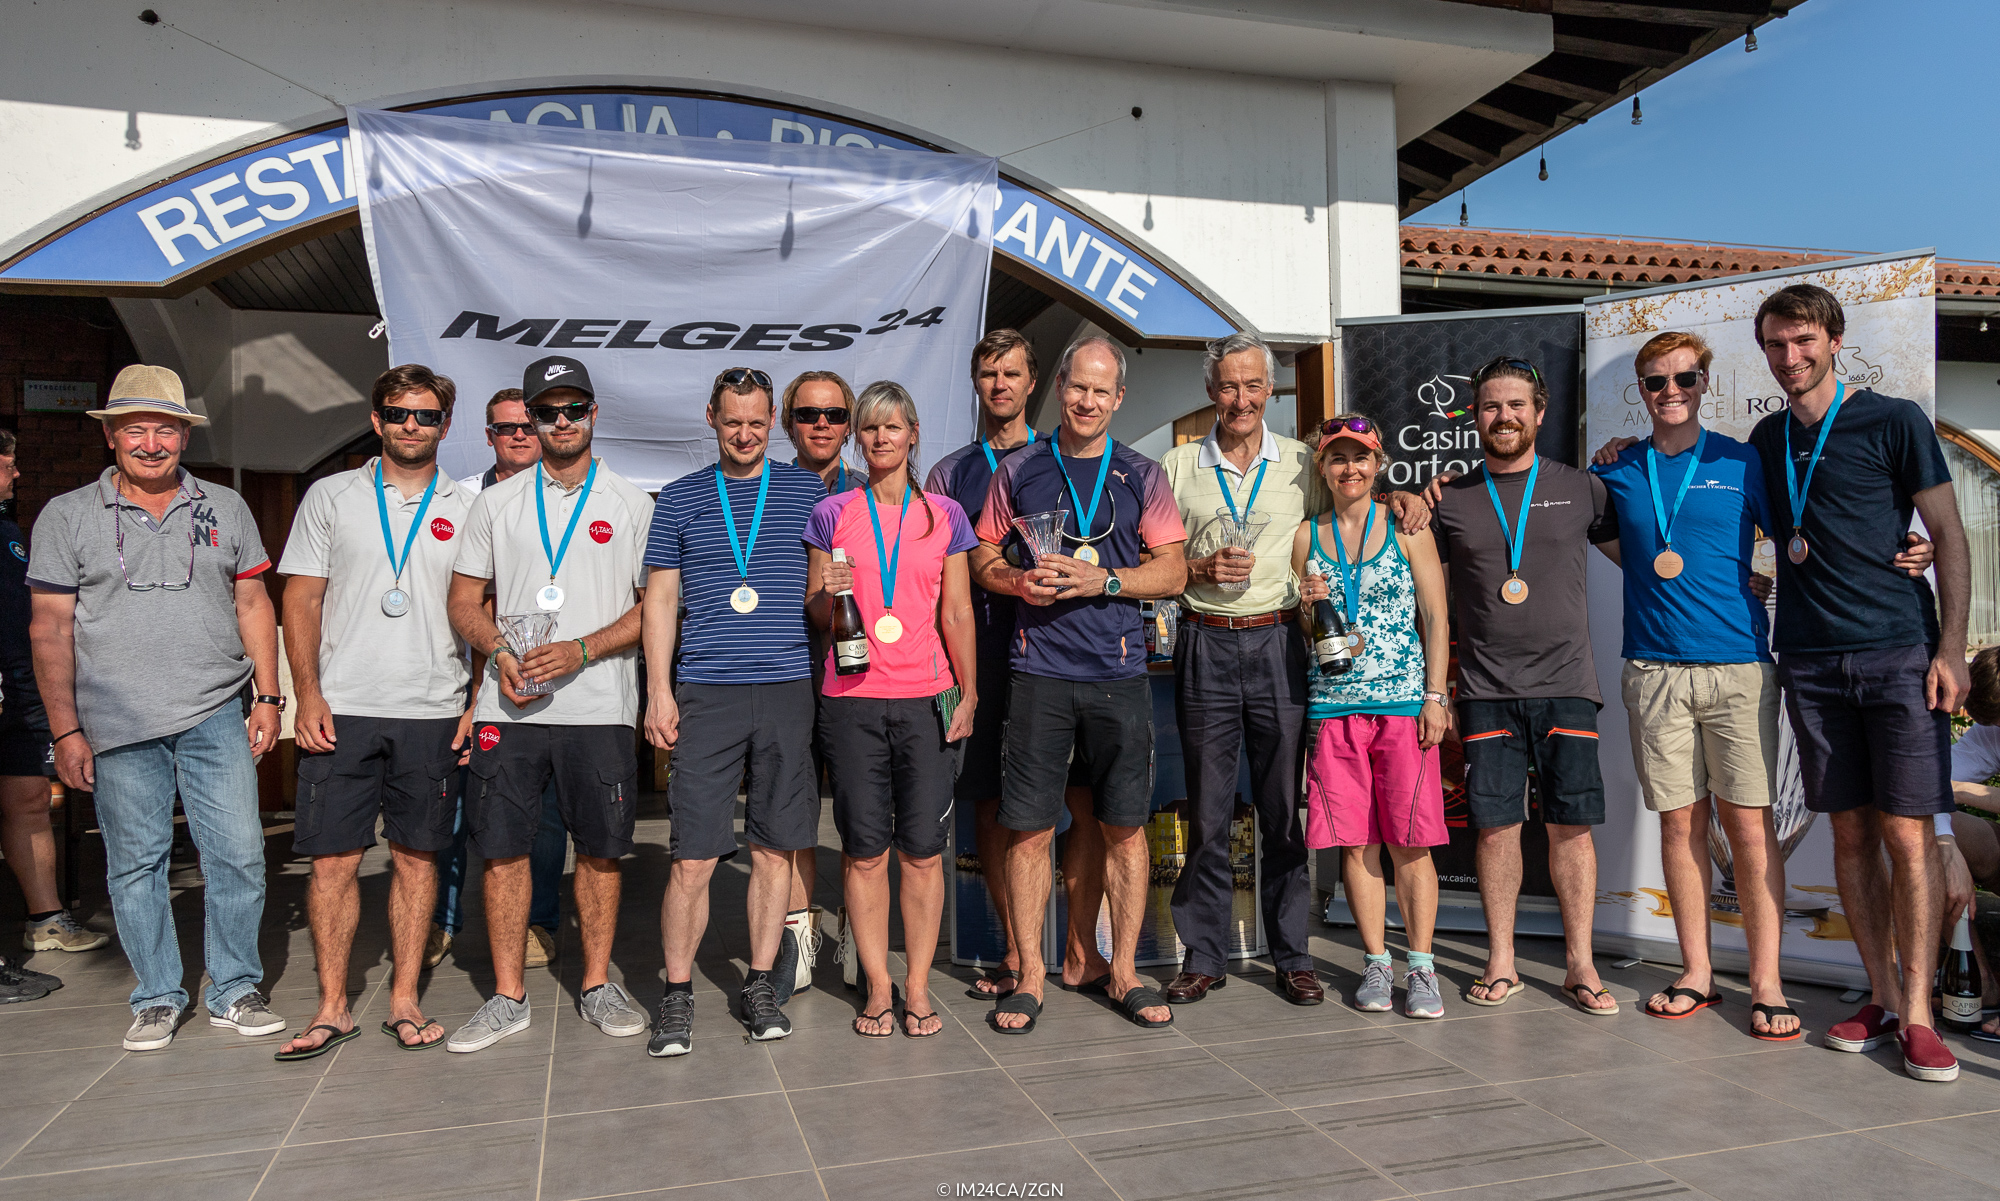 The Corinthian Top 3 of the Marina Portoroz 2018 regatta